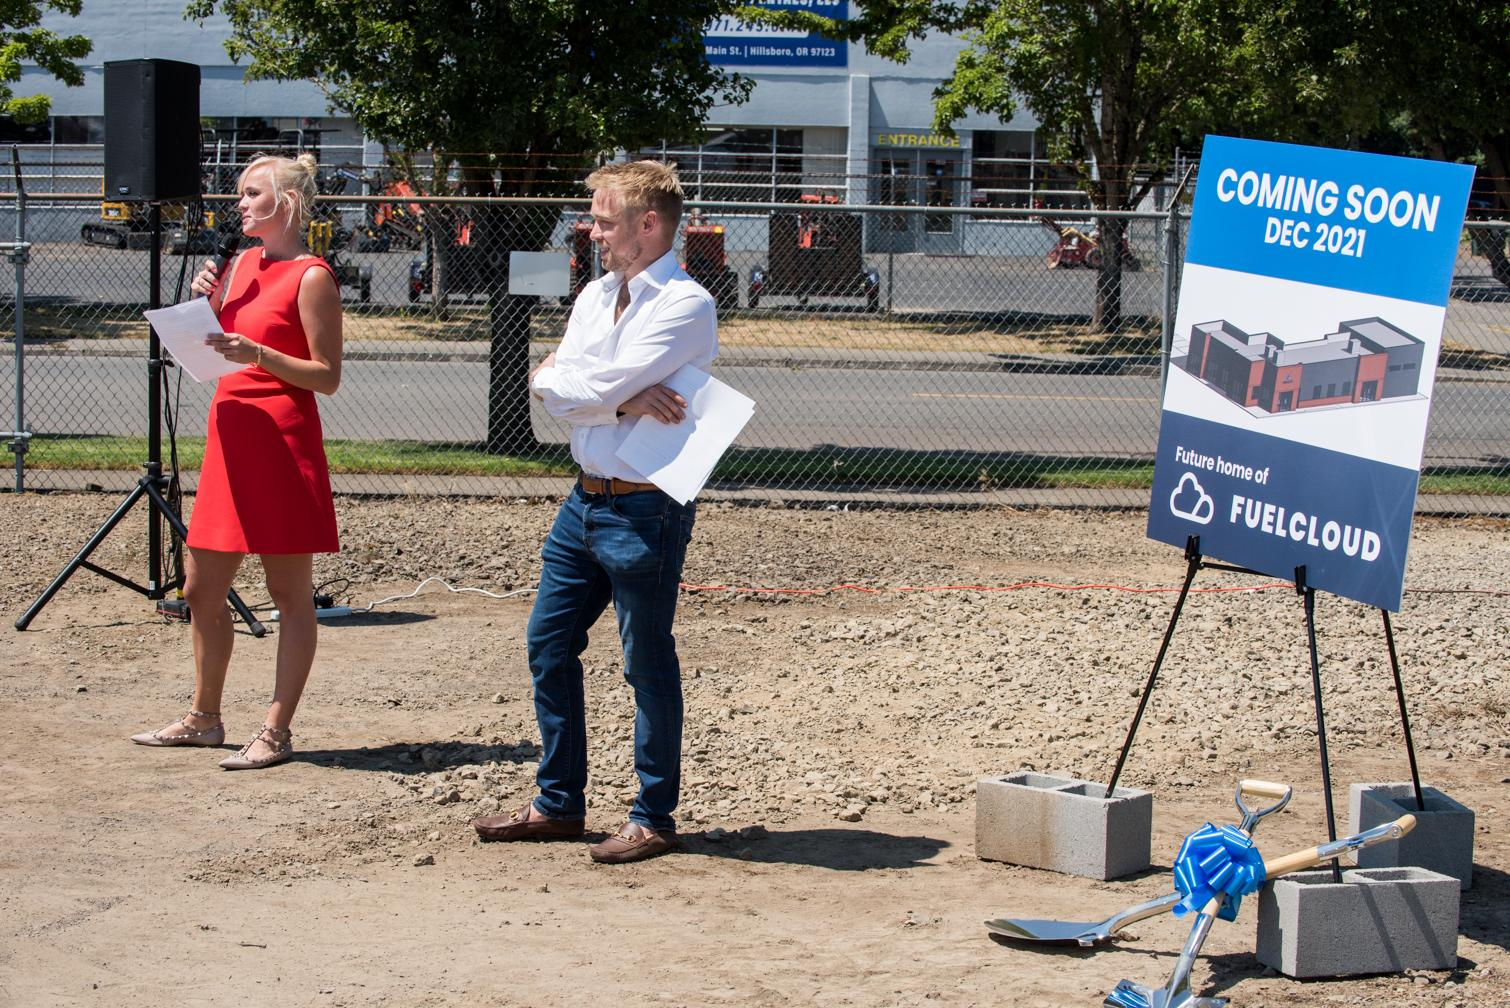 Kevin and Alex give speeches the groundbreaking ceremony